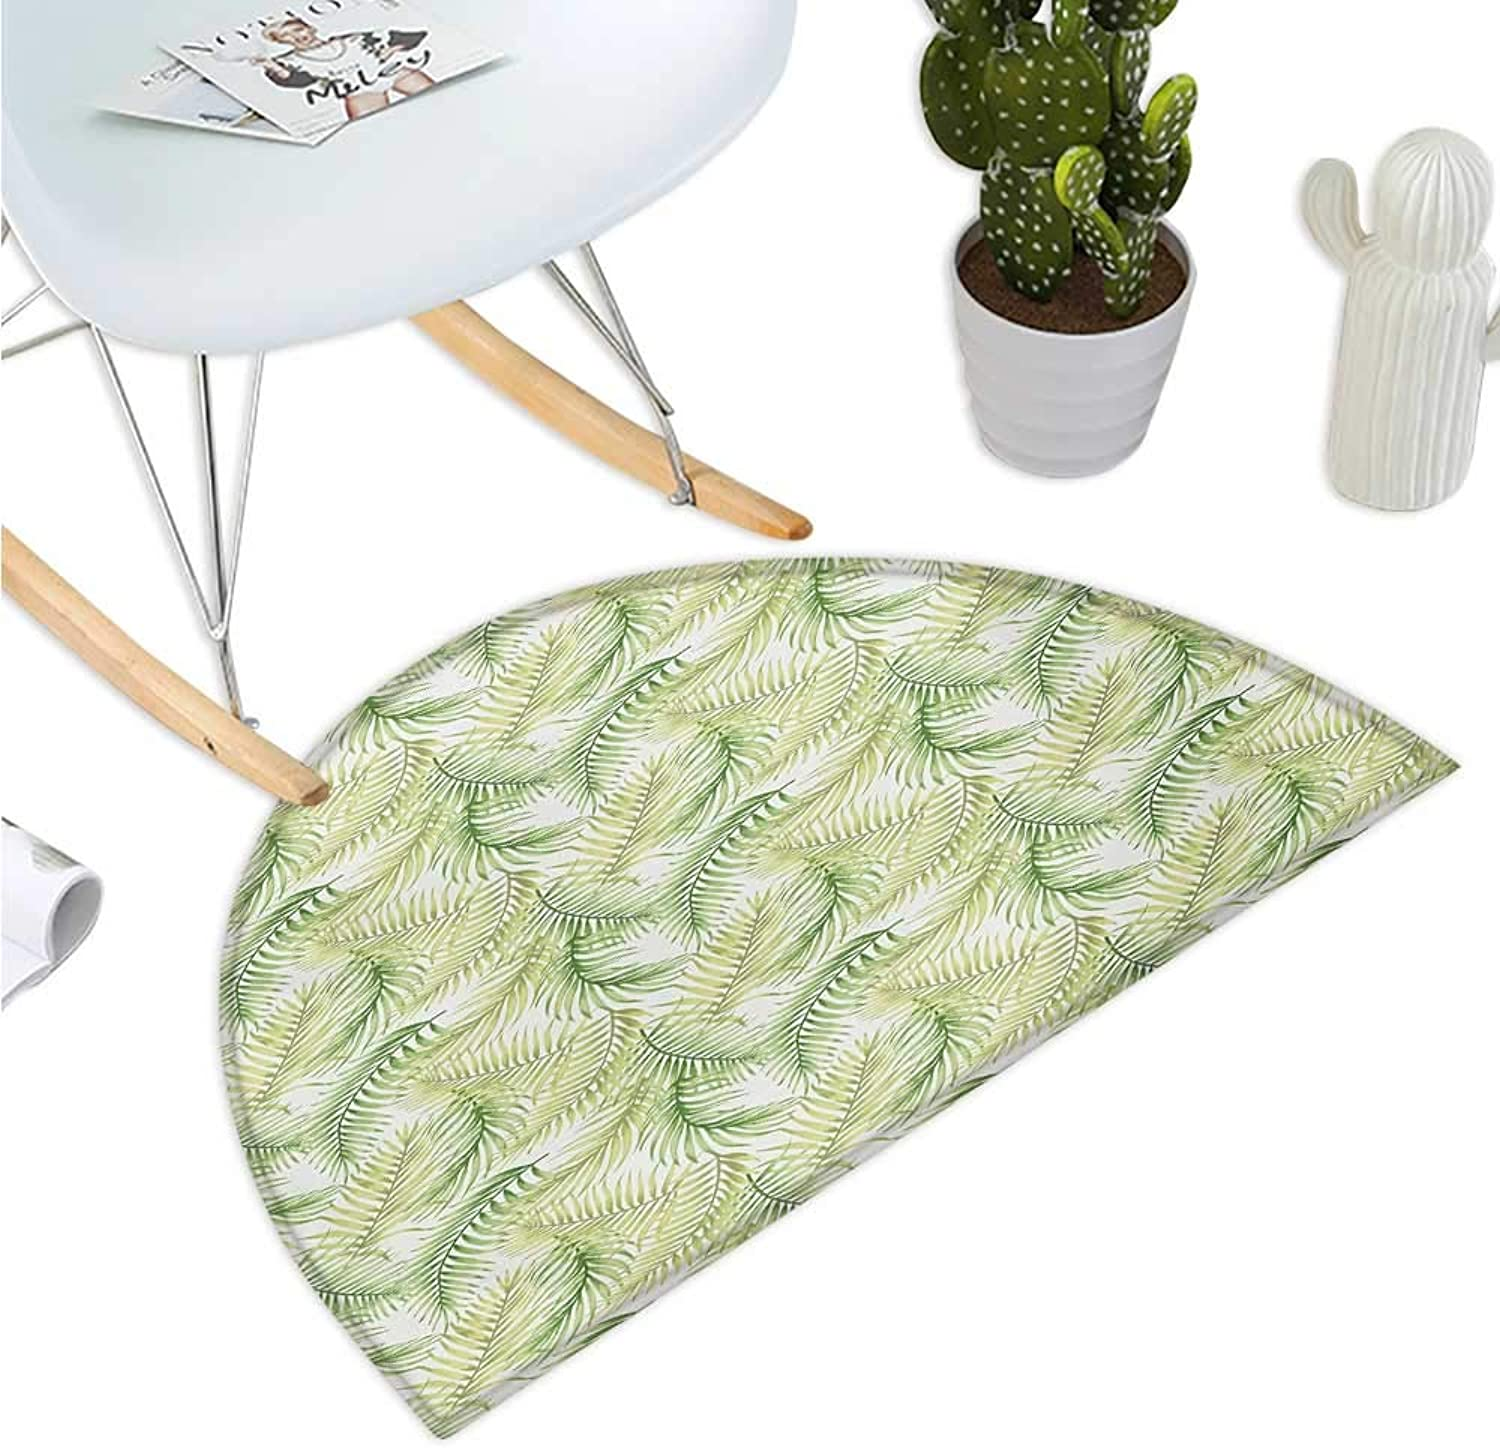 Palm Leaf Half Round Door mats Green Leaves of Coconut Palms Watercolor Style Fresh Nature Pattern Bathroom Mat H 39.3  xD 59  Fern Green Pale Green